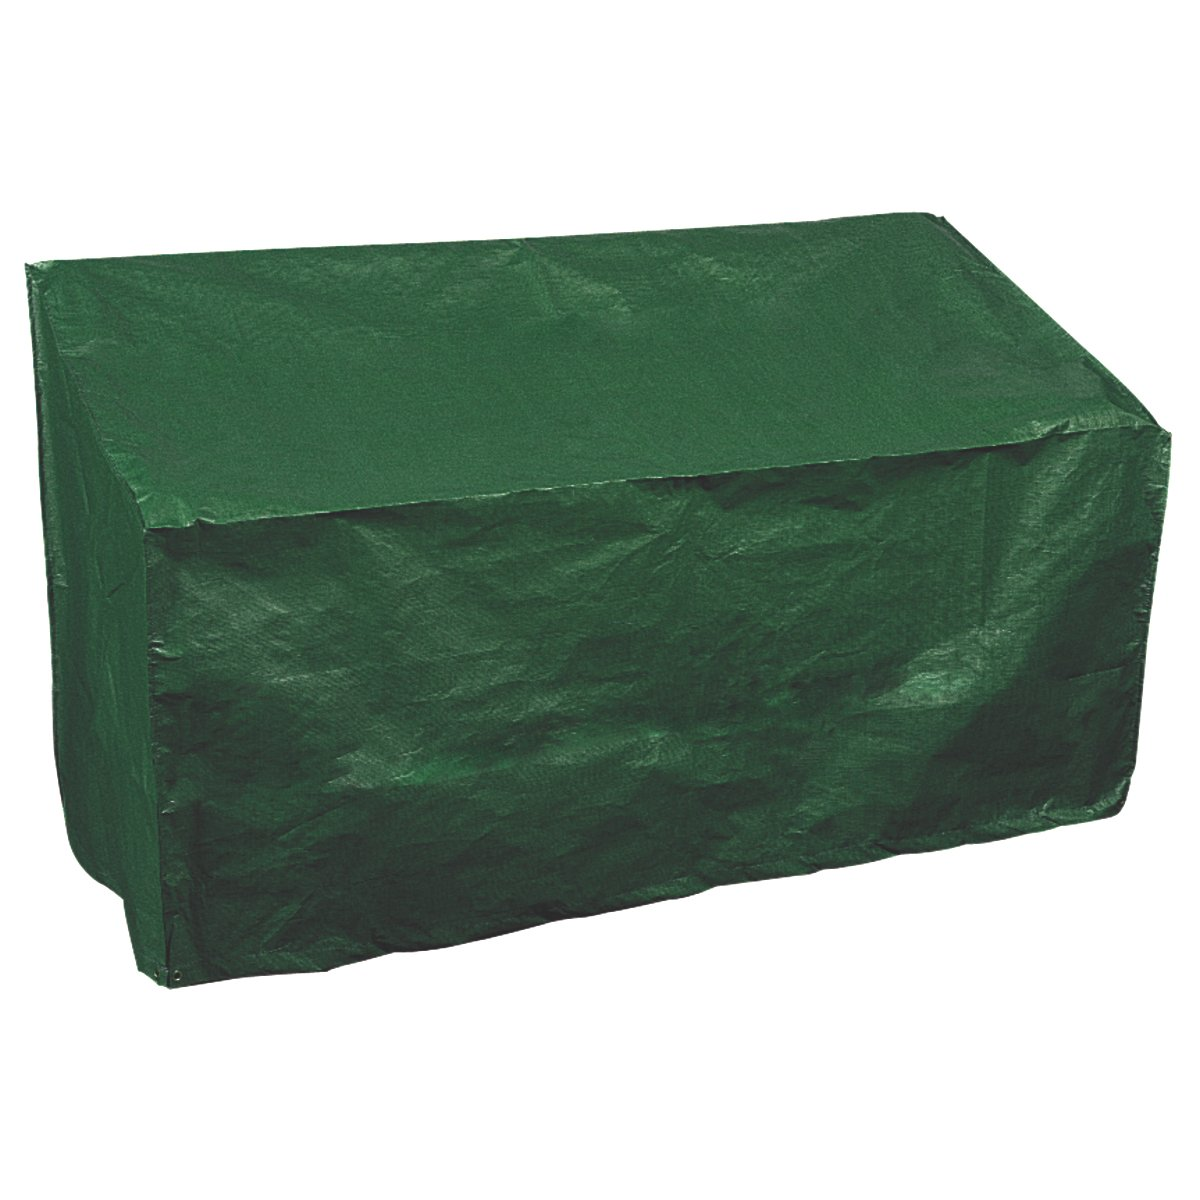 Bosmere B410 Bench Seat Cover Bosmere Products Ltd